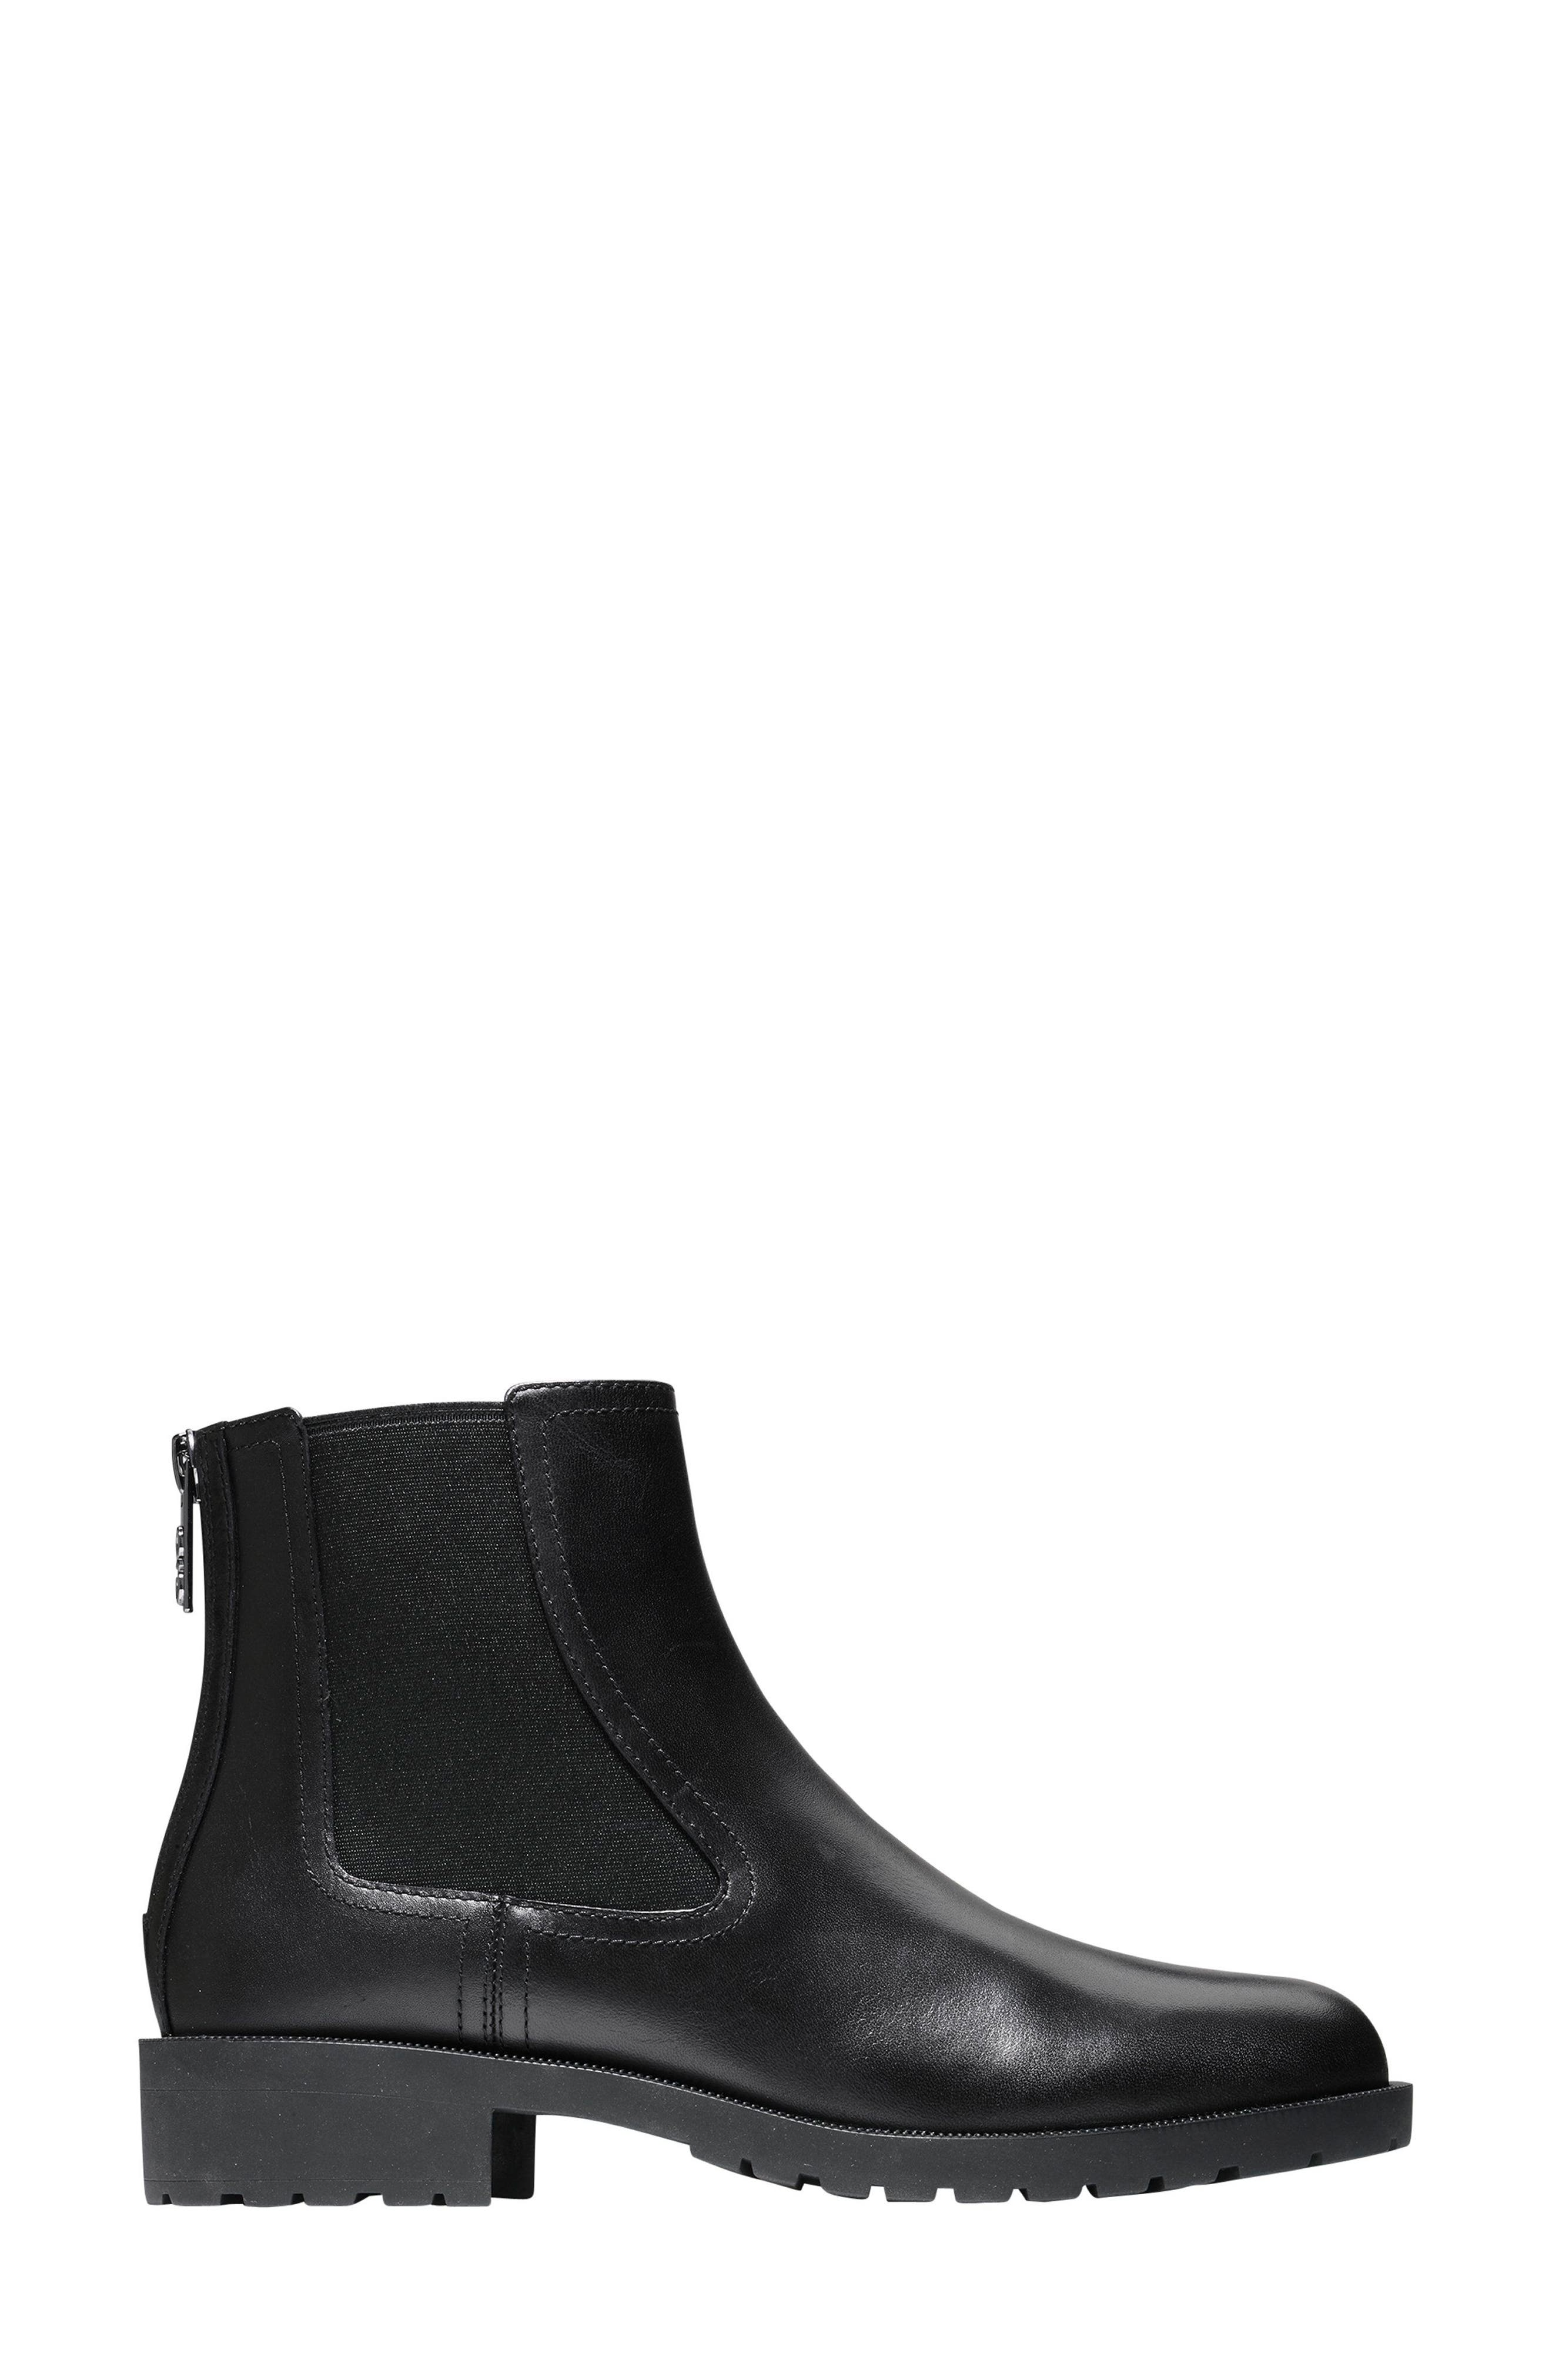 Stanton Weatherproof Chelsea Boot,                             Alternate thumbnail 3, color,                             001